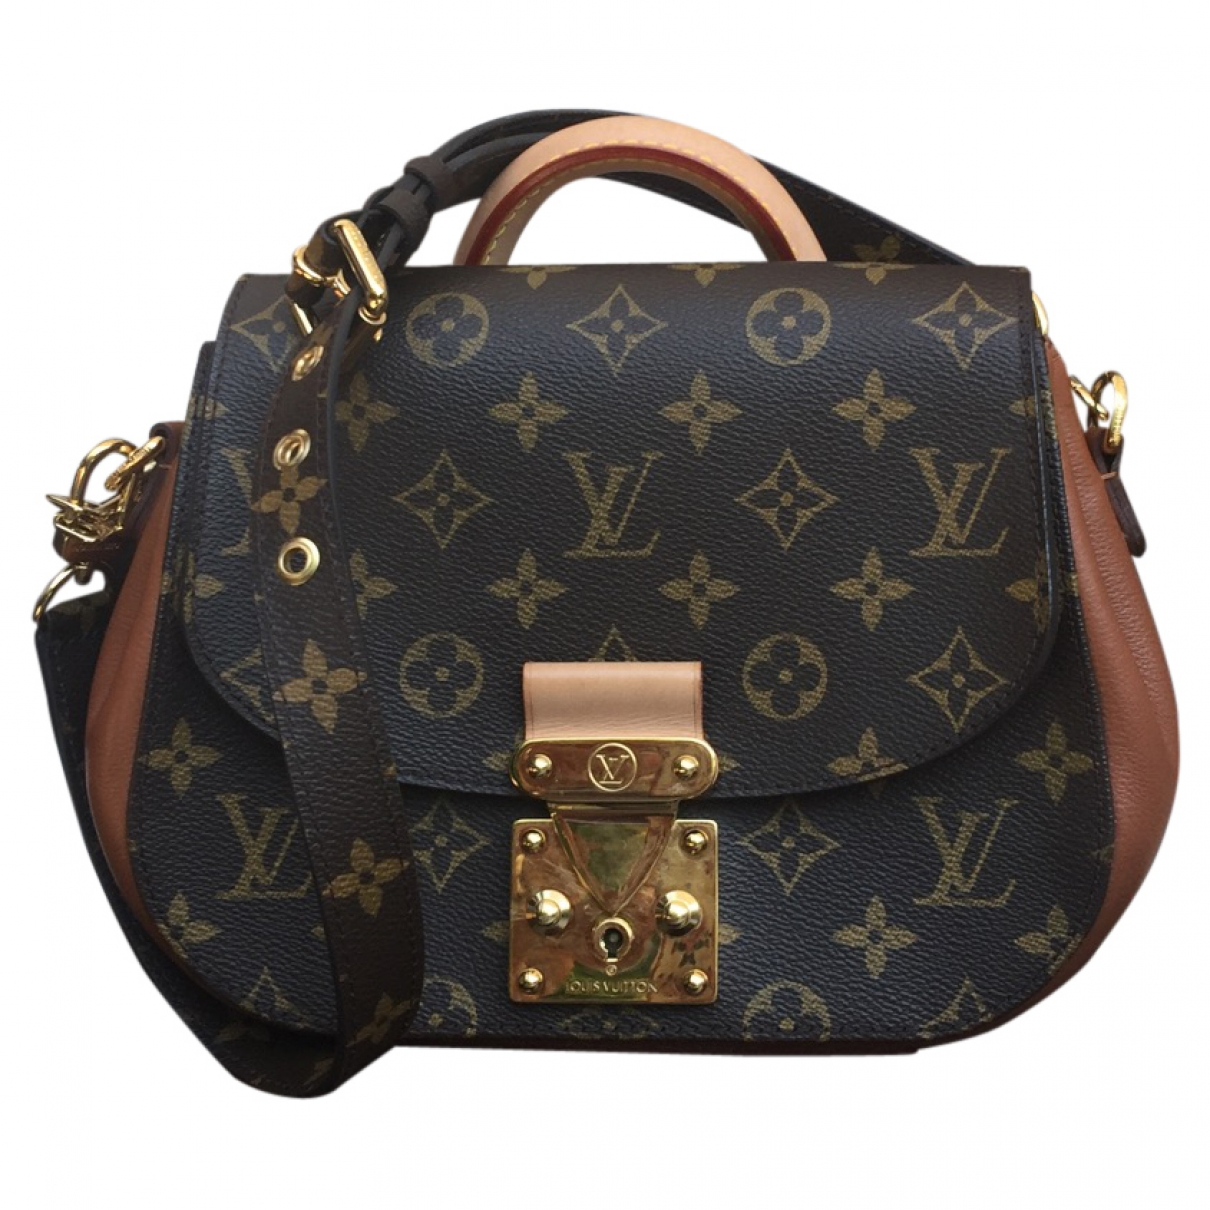 Louis Vuitton Eden Handtasche in Leinen